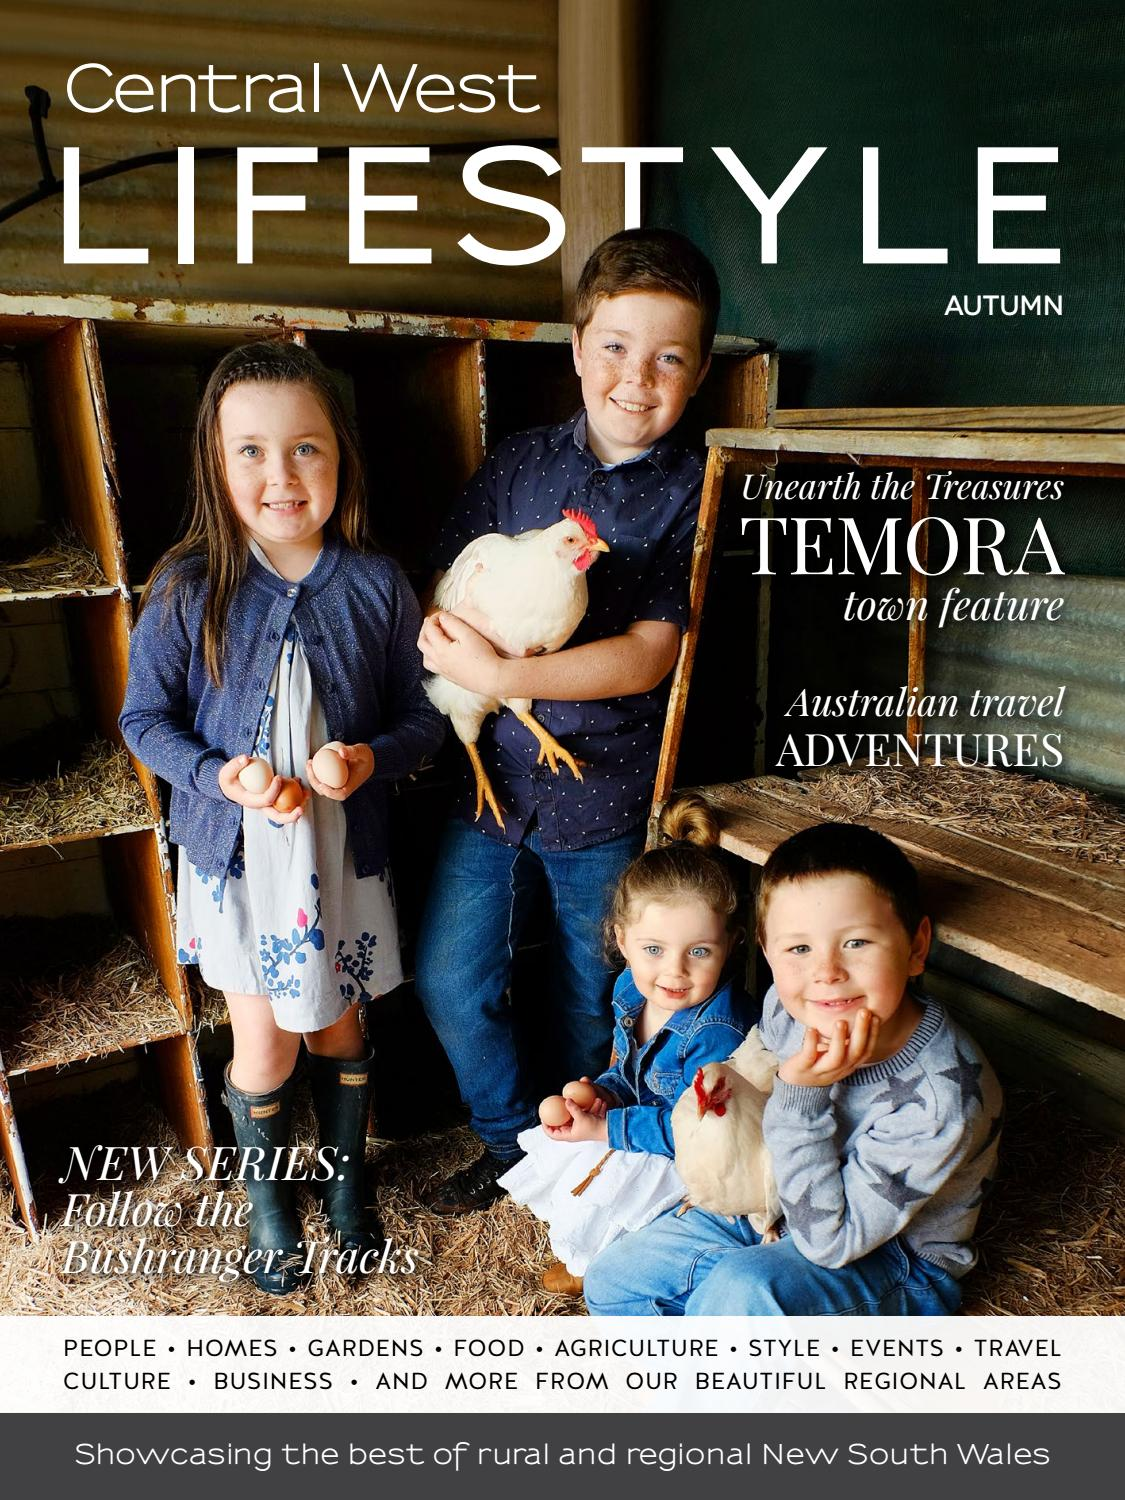 16 Central West Lifestyle | Autumn 2017 by Regional Lifestyle